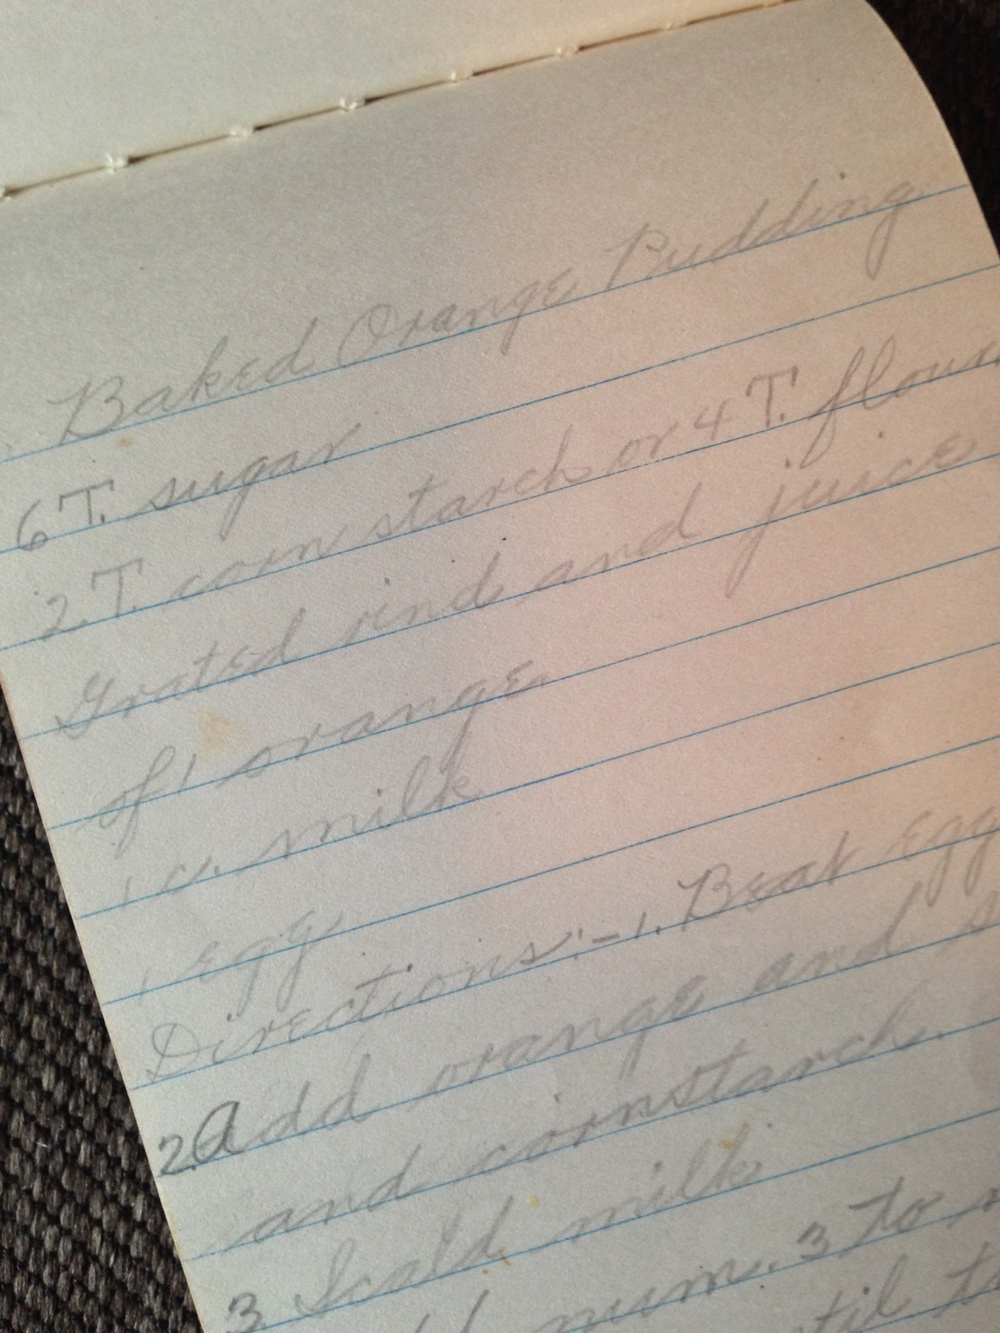 A recipe for baked orange pudding by my Grandma Marion in her old notebook.